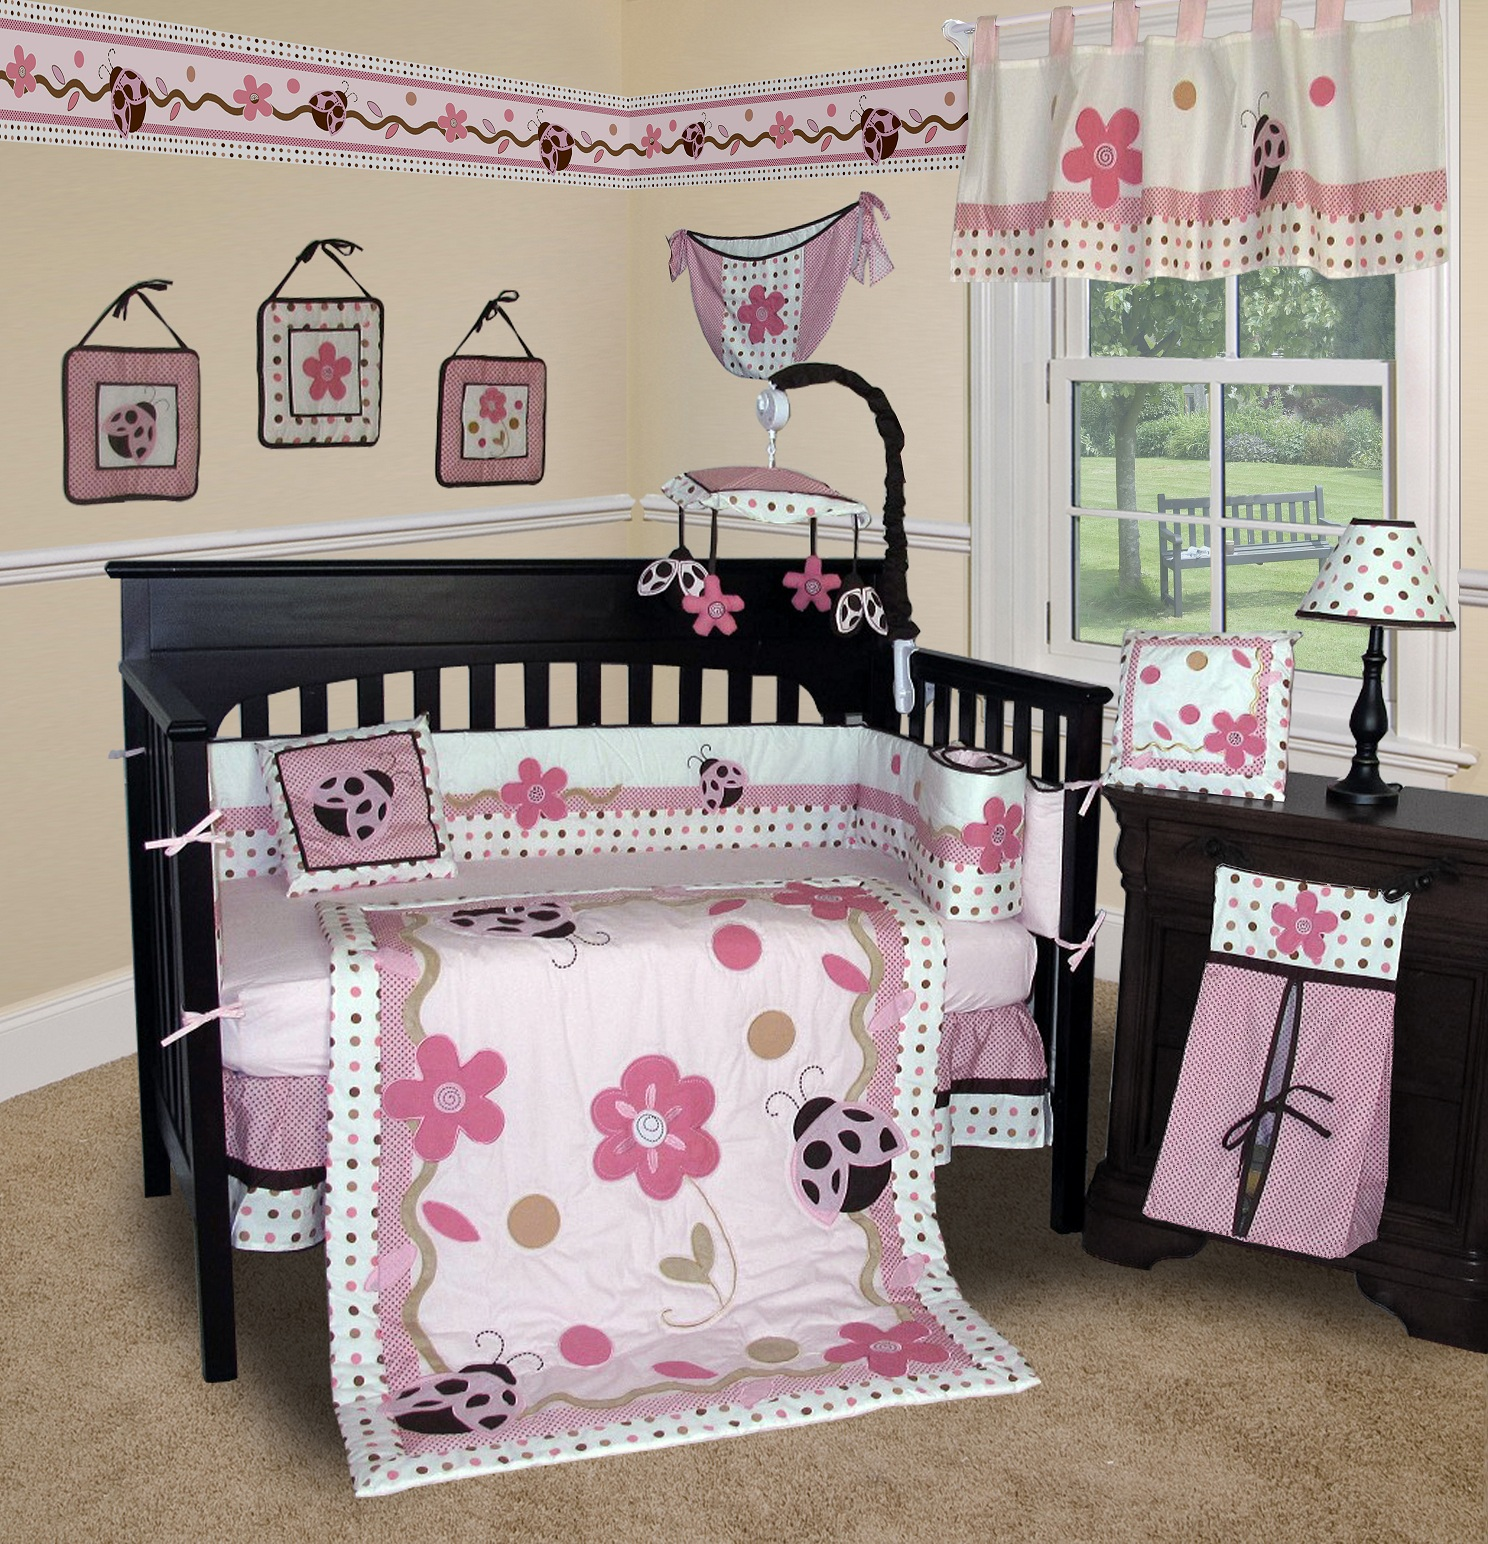 Baby Boutique Ladybug 13 Pcs Crib Bedding Set